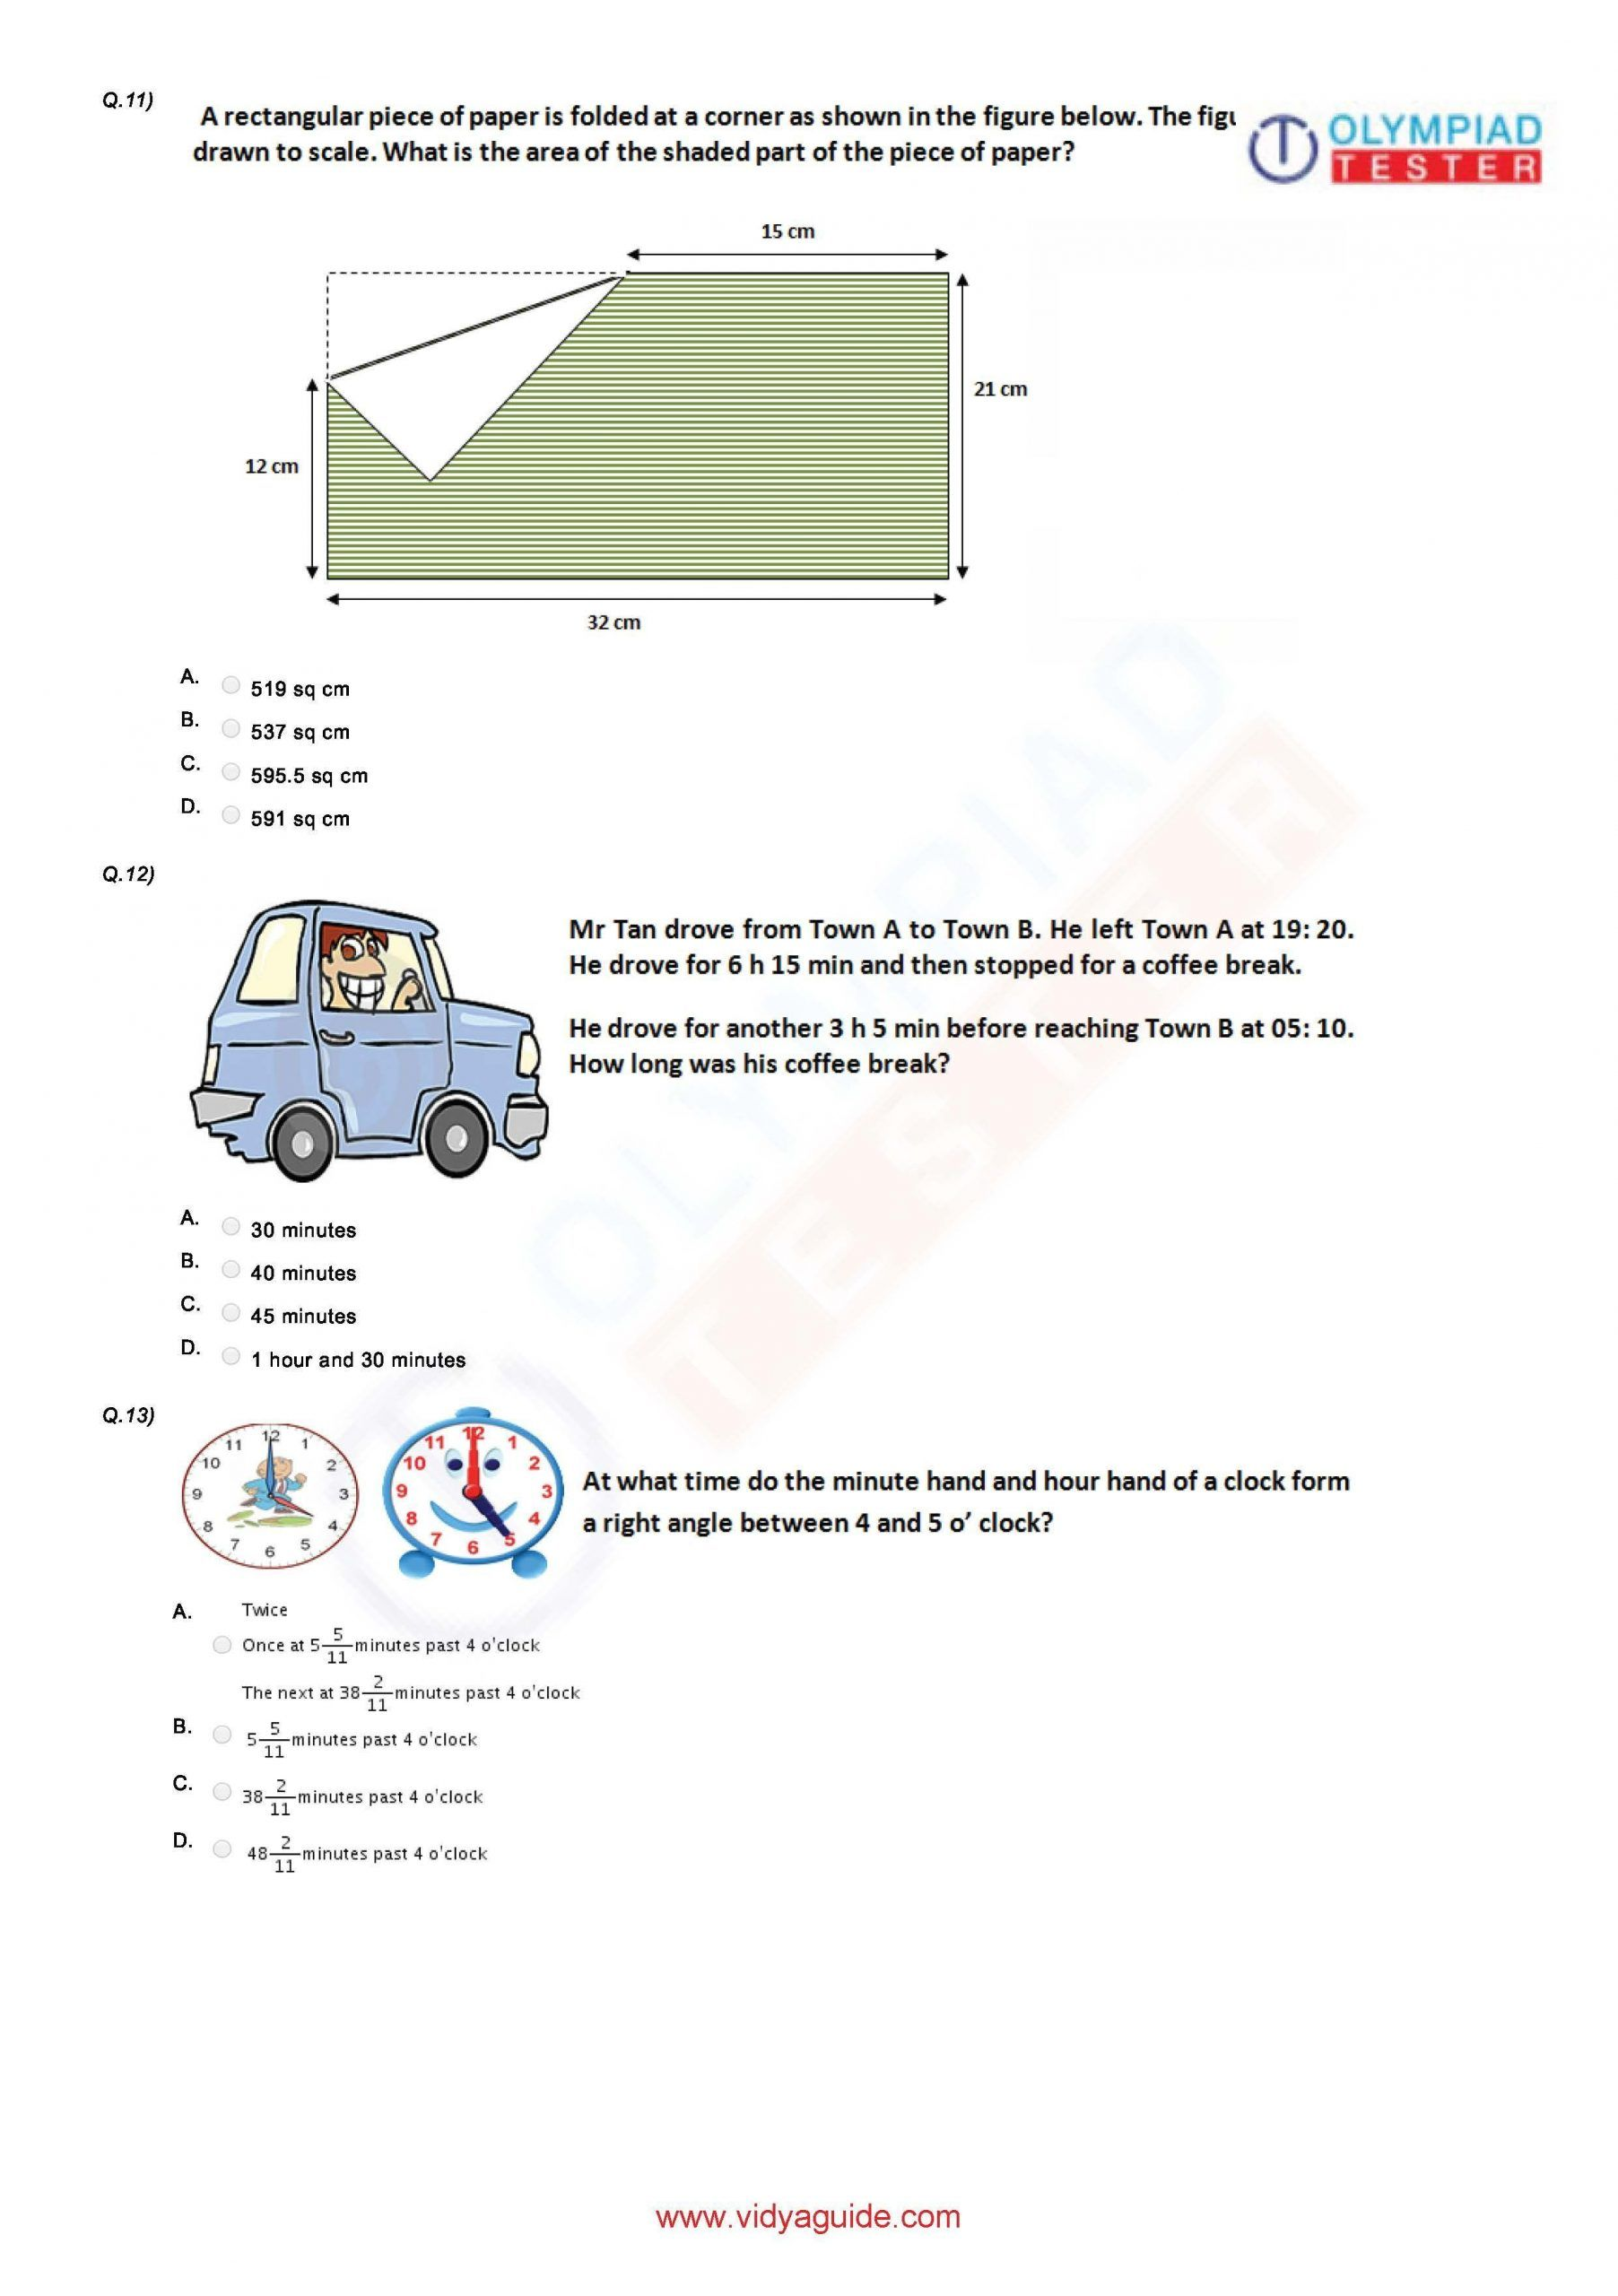 5th Grade Math Olympiad Worksheet Download Free Grade 5 Maths Printable Worksheets Or Take Math Olympiad 5th Grade Math Math